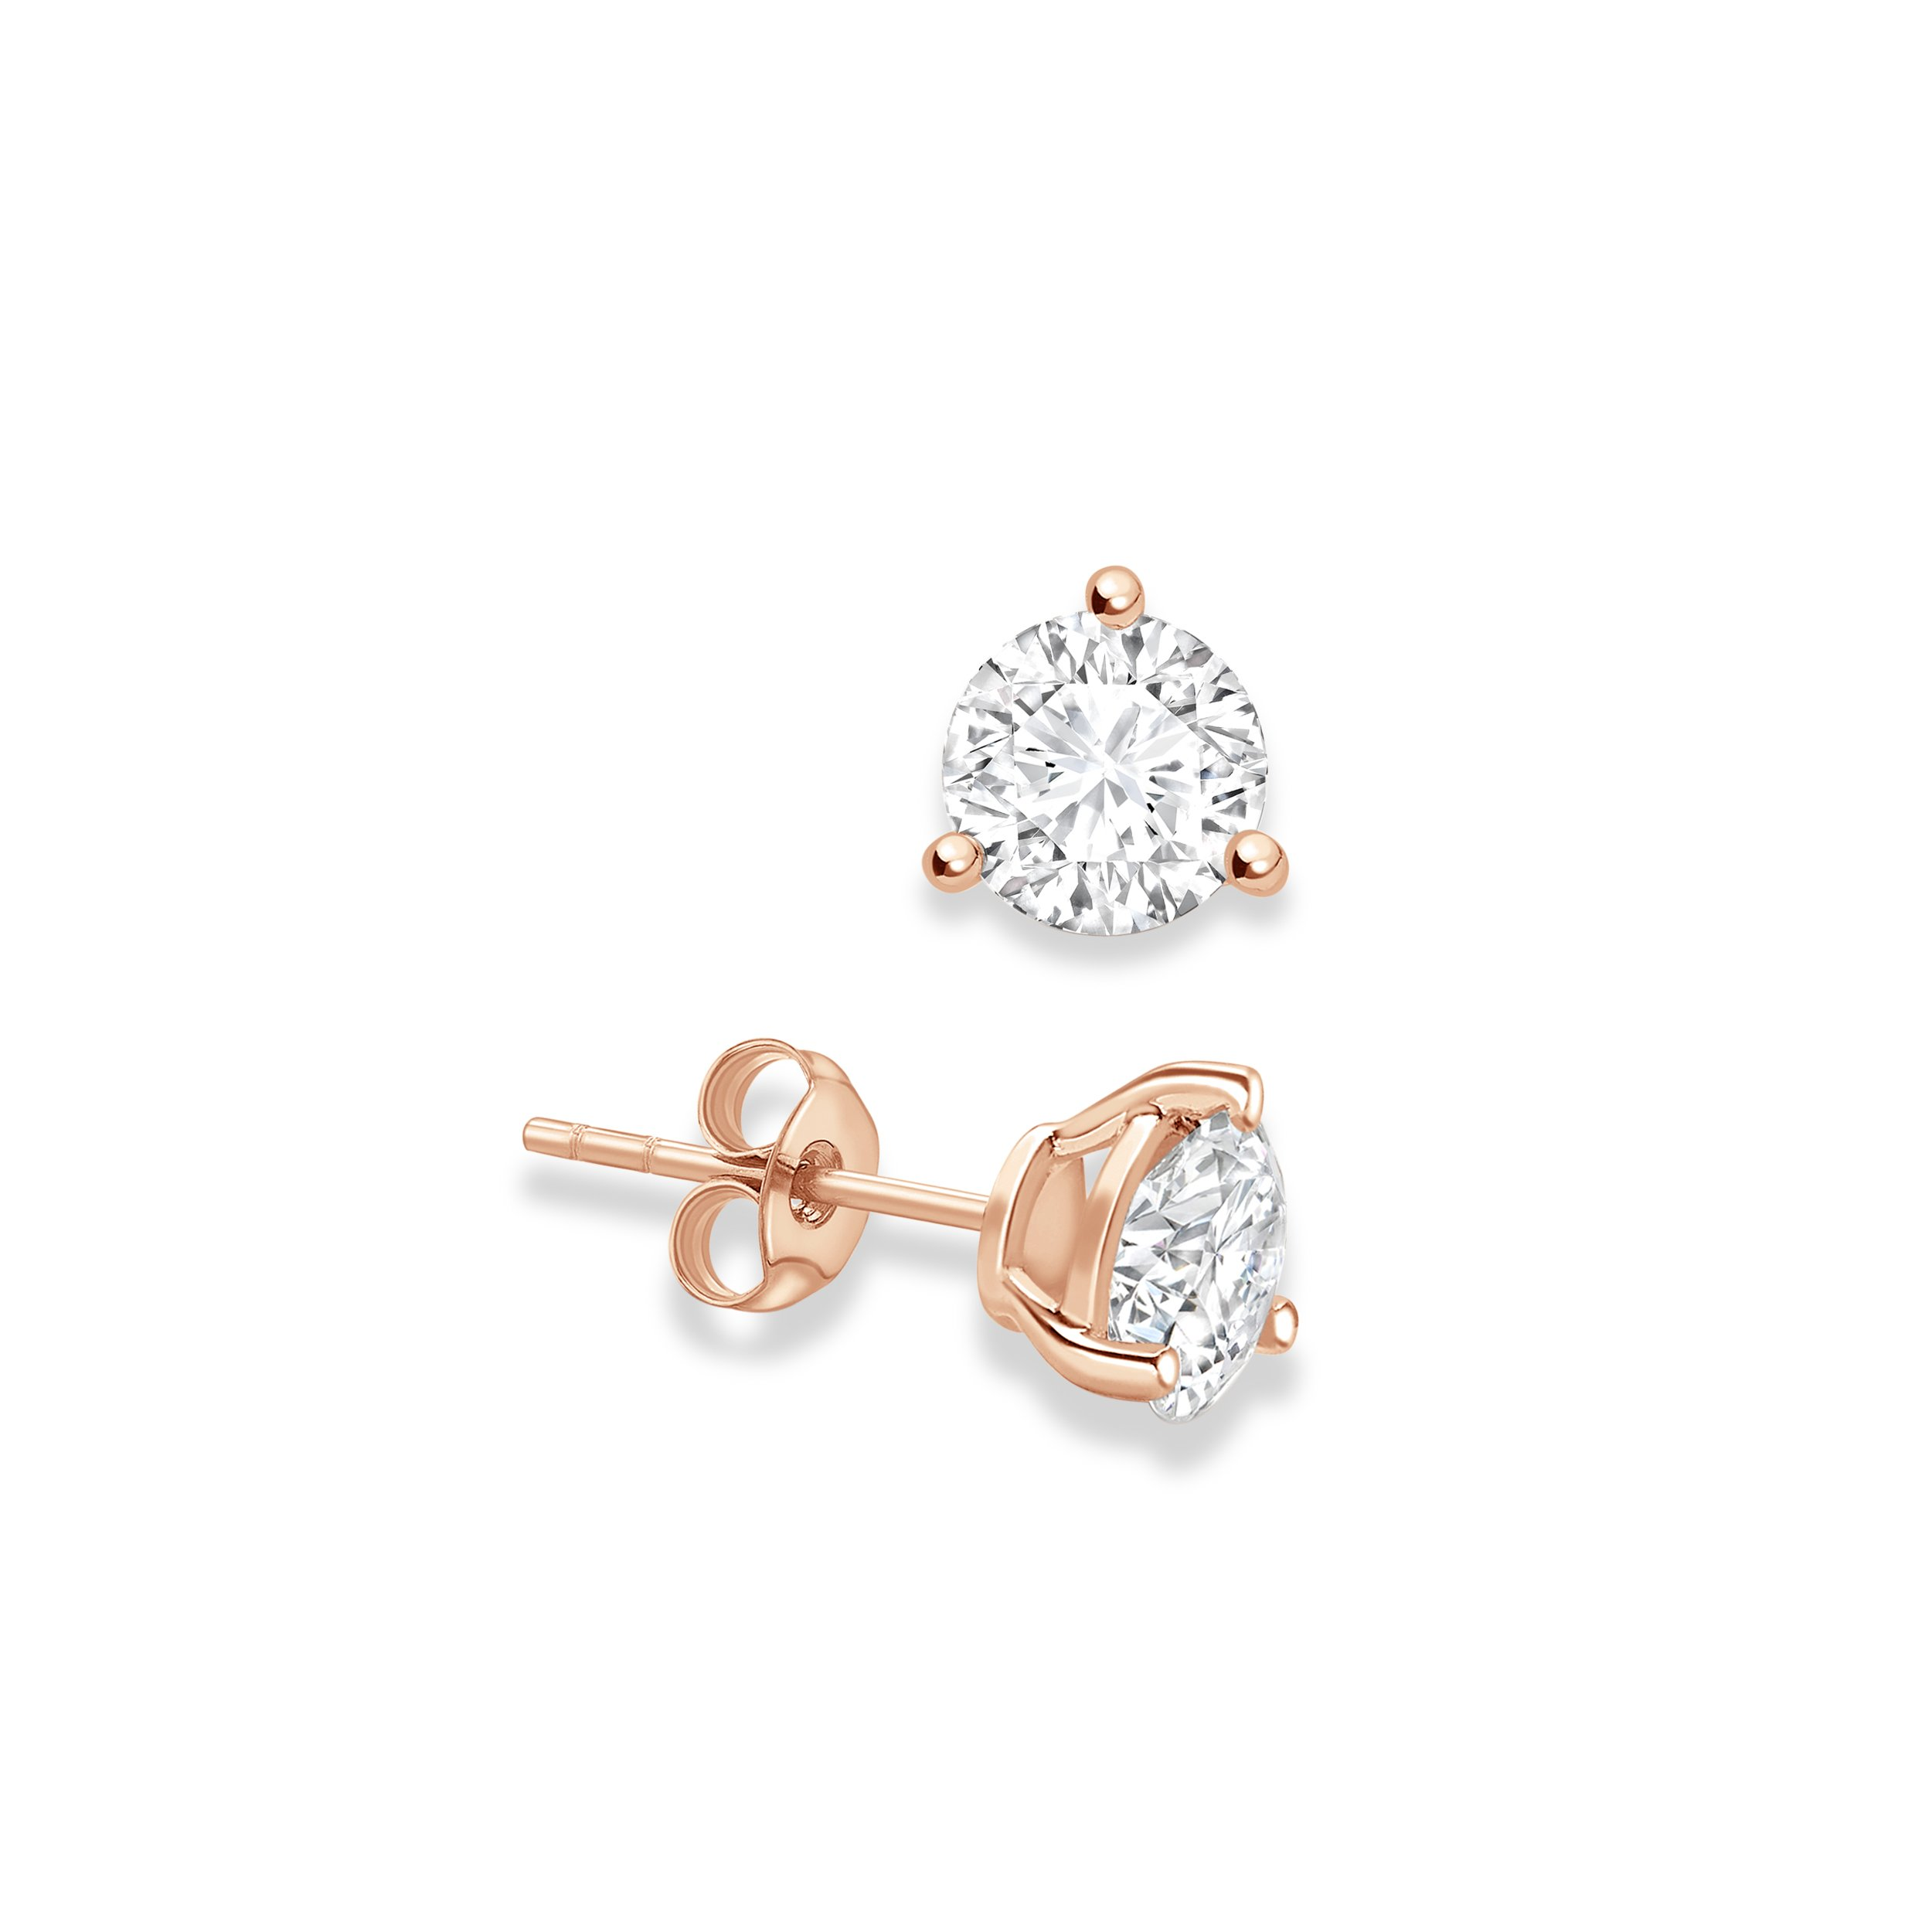 f8ece72ff42 3 Claws Classic Design Round Stud Diamond Earrings Available in Rose